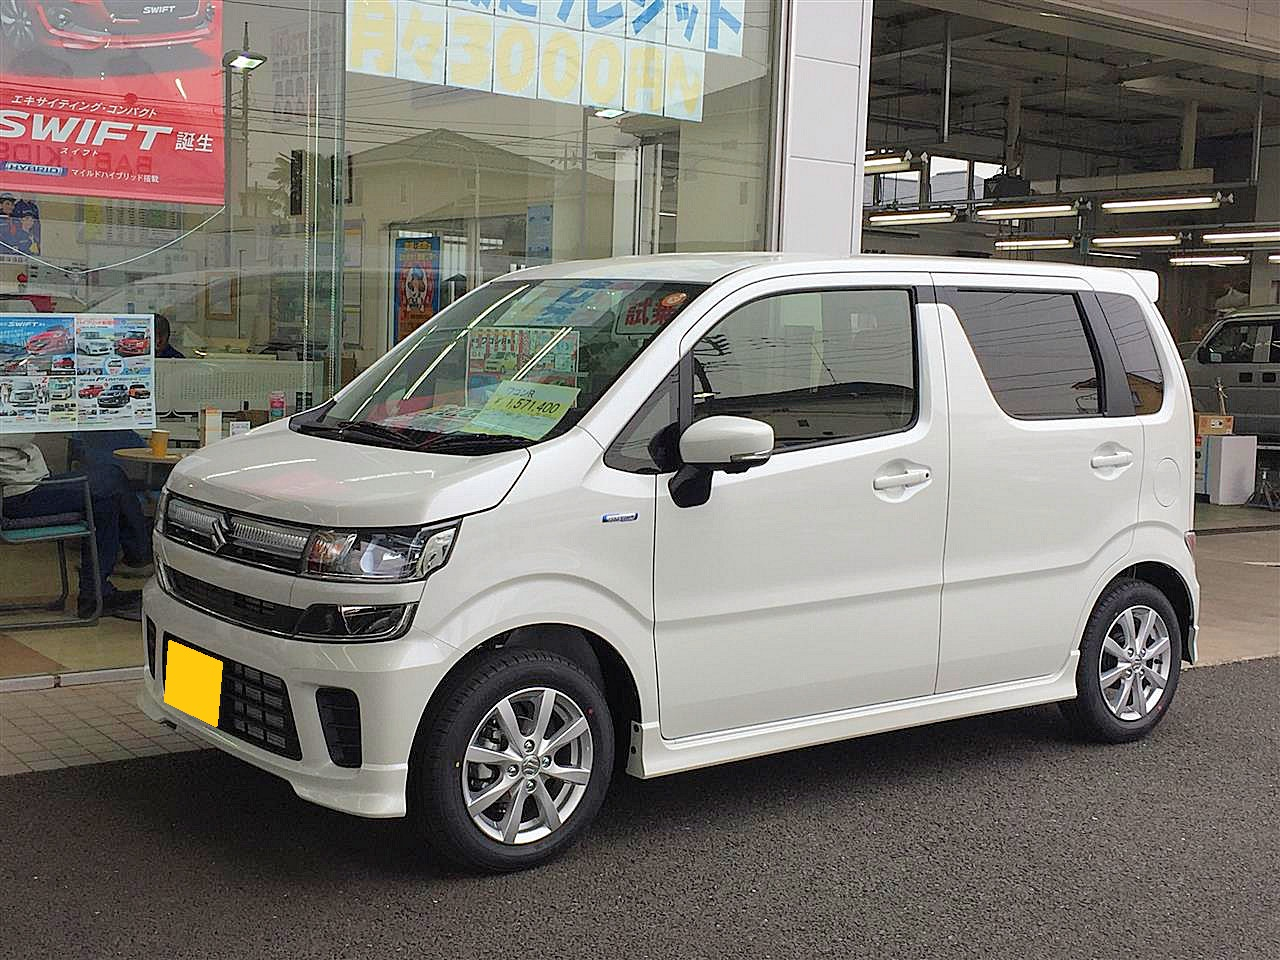 suzuki wagon r wiki everipedia. Black Bedroom Furniture Sets. Home Design Ideas